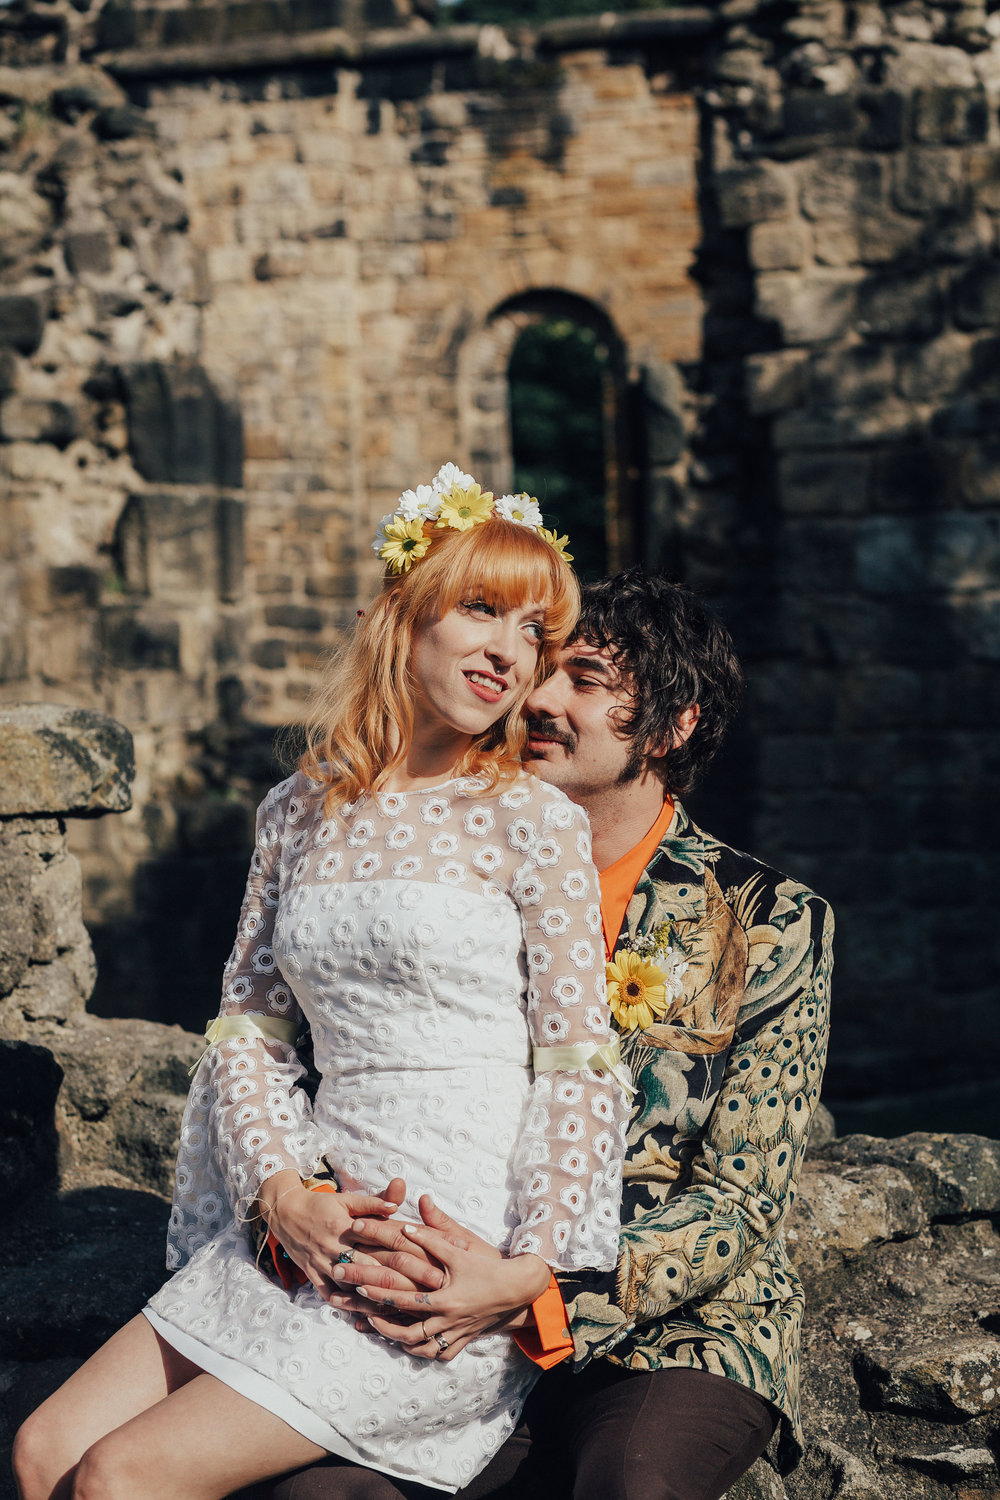 ALTERNATIVE_WEDDING_PHOTOGRAPHY_LEEDS_UK_PJ_PHILLIPS_PHOTOGRAPHY_106.jpg